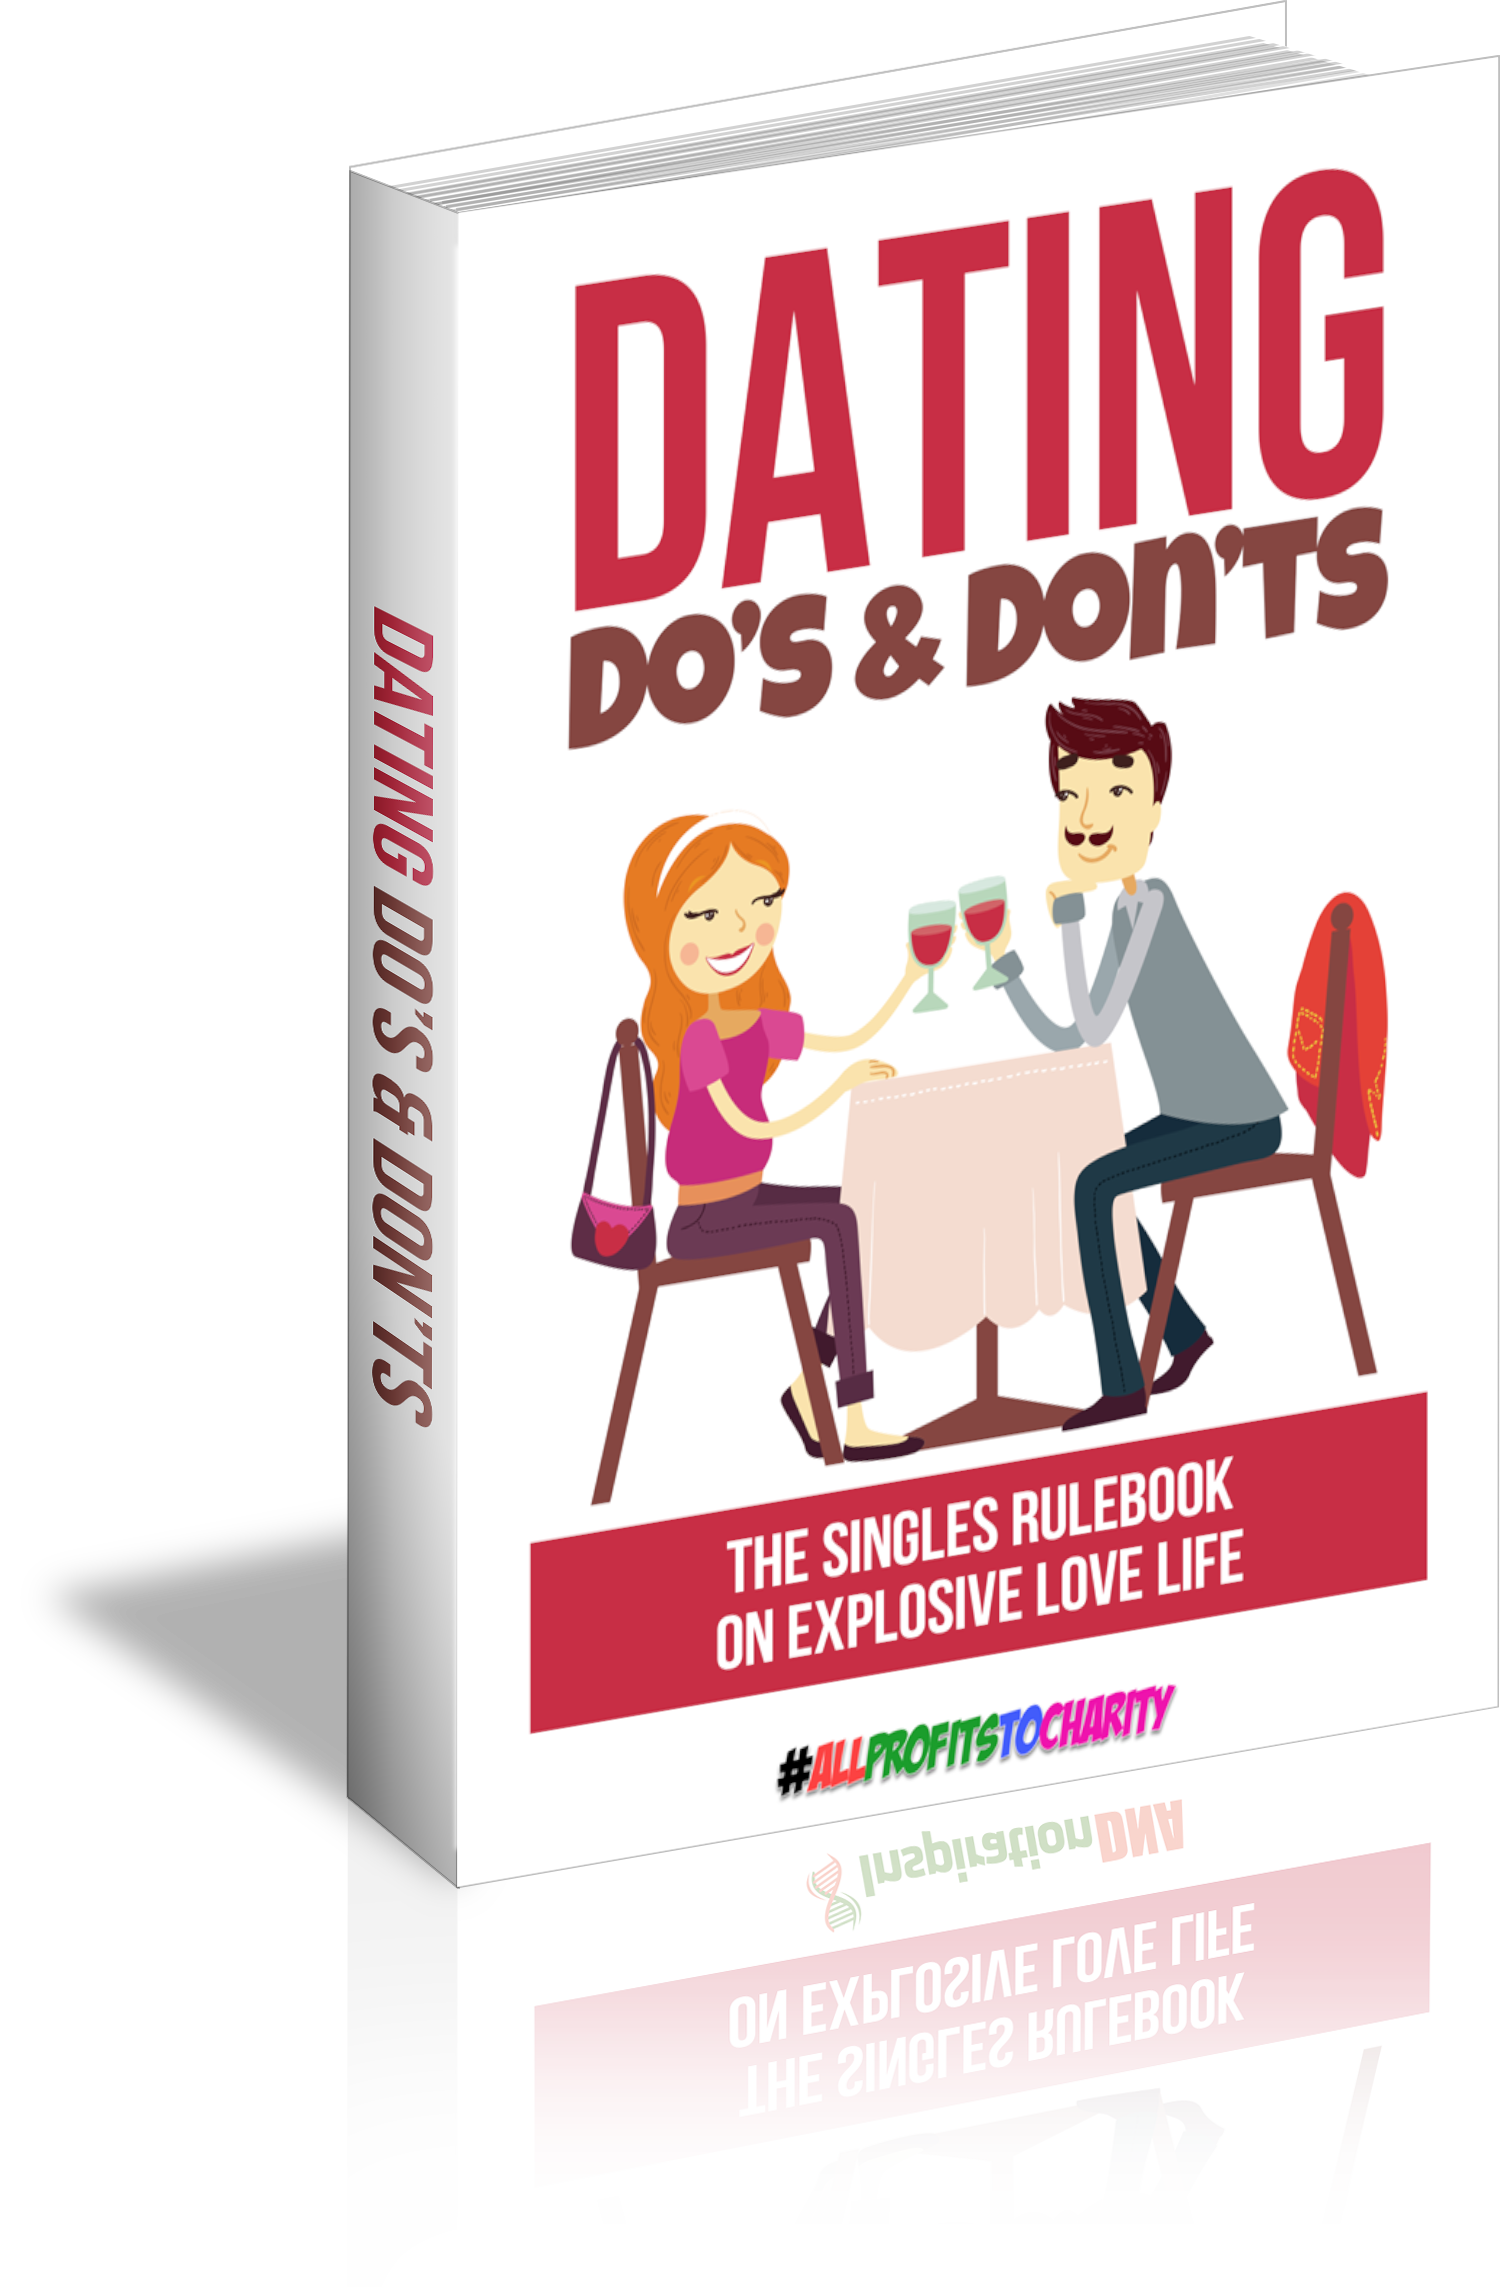 Dating Dos & Donts cover